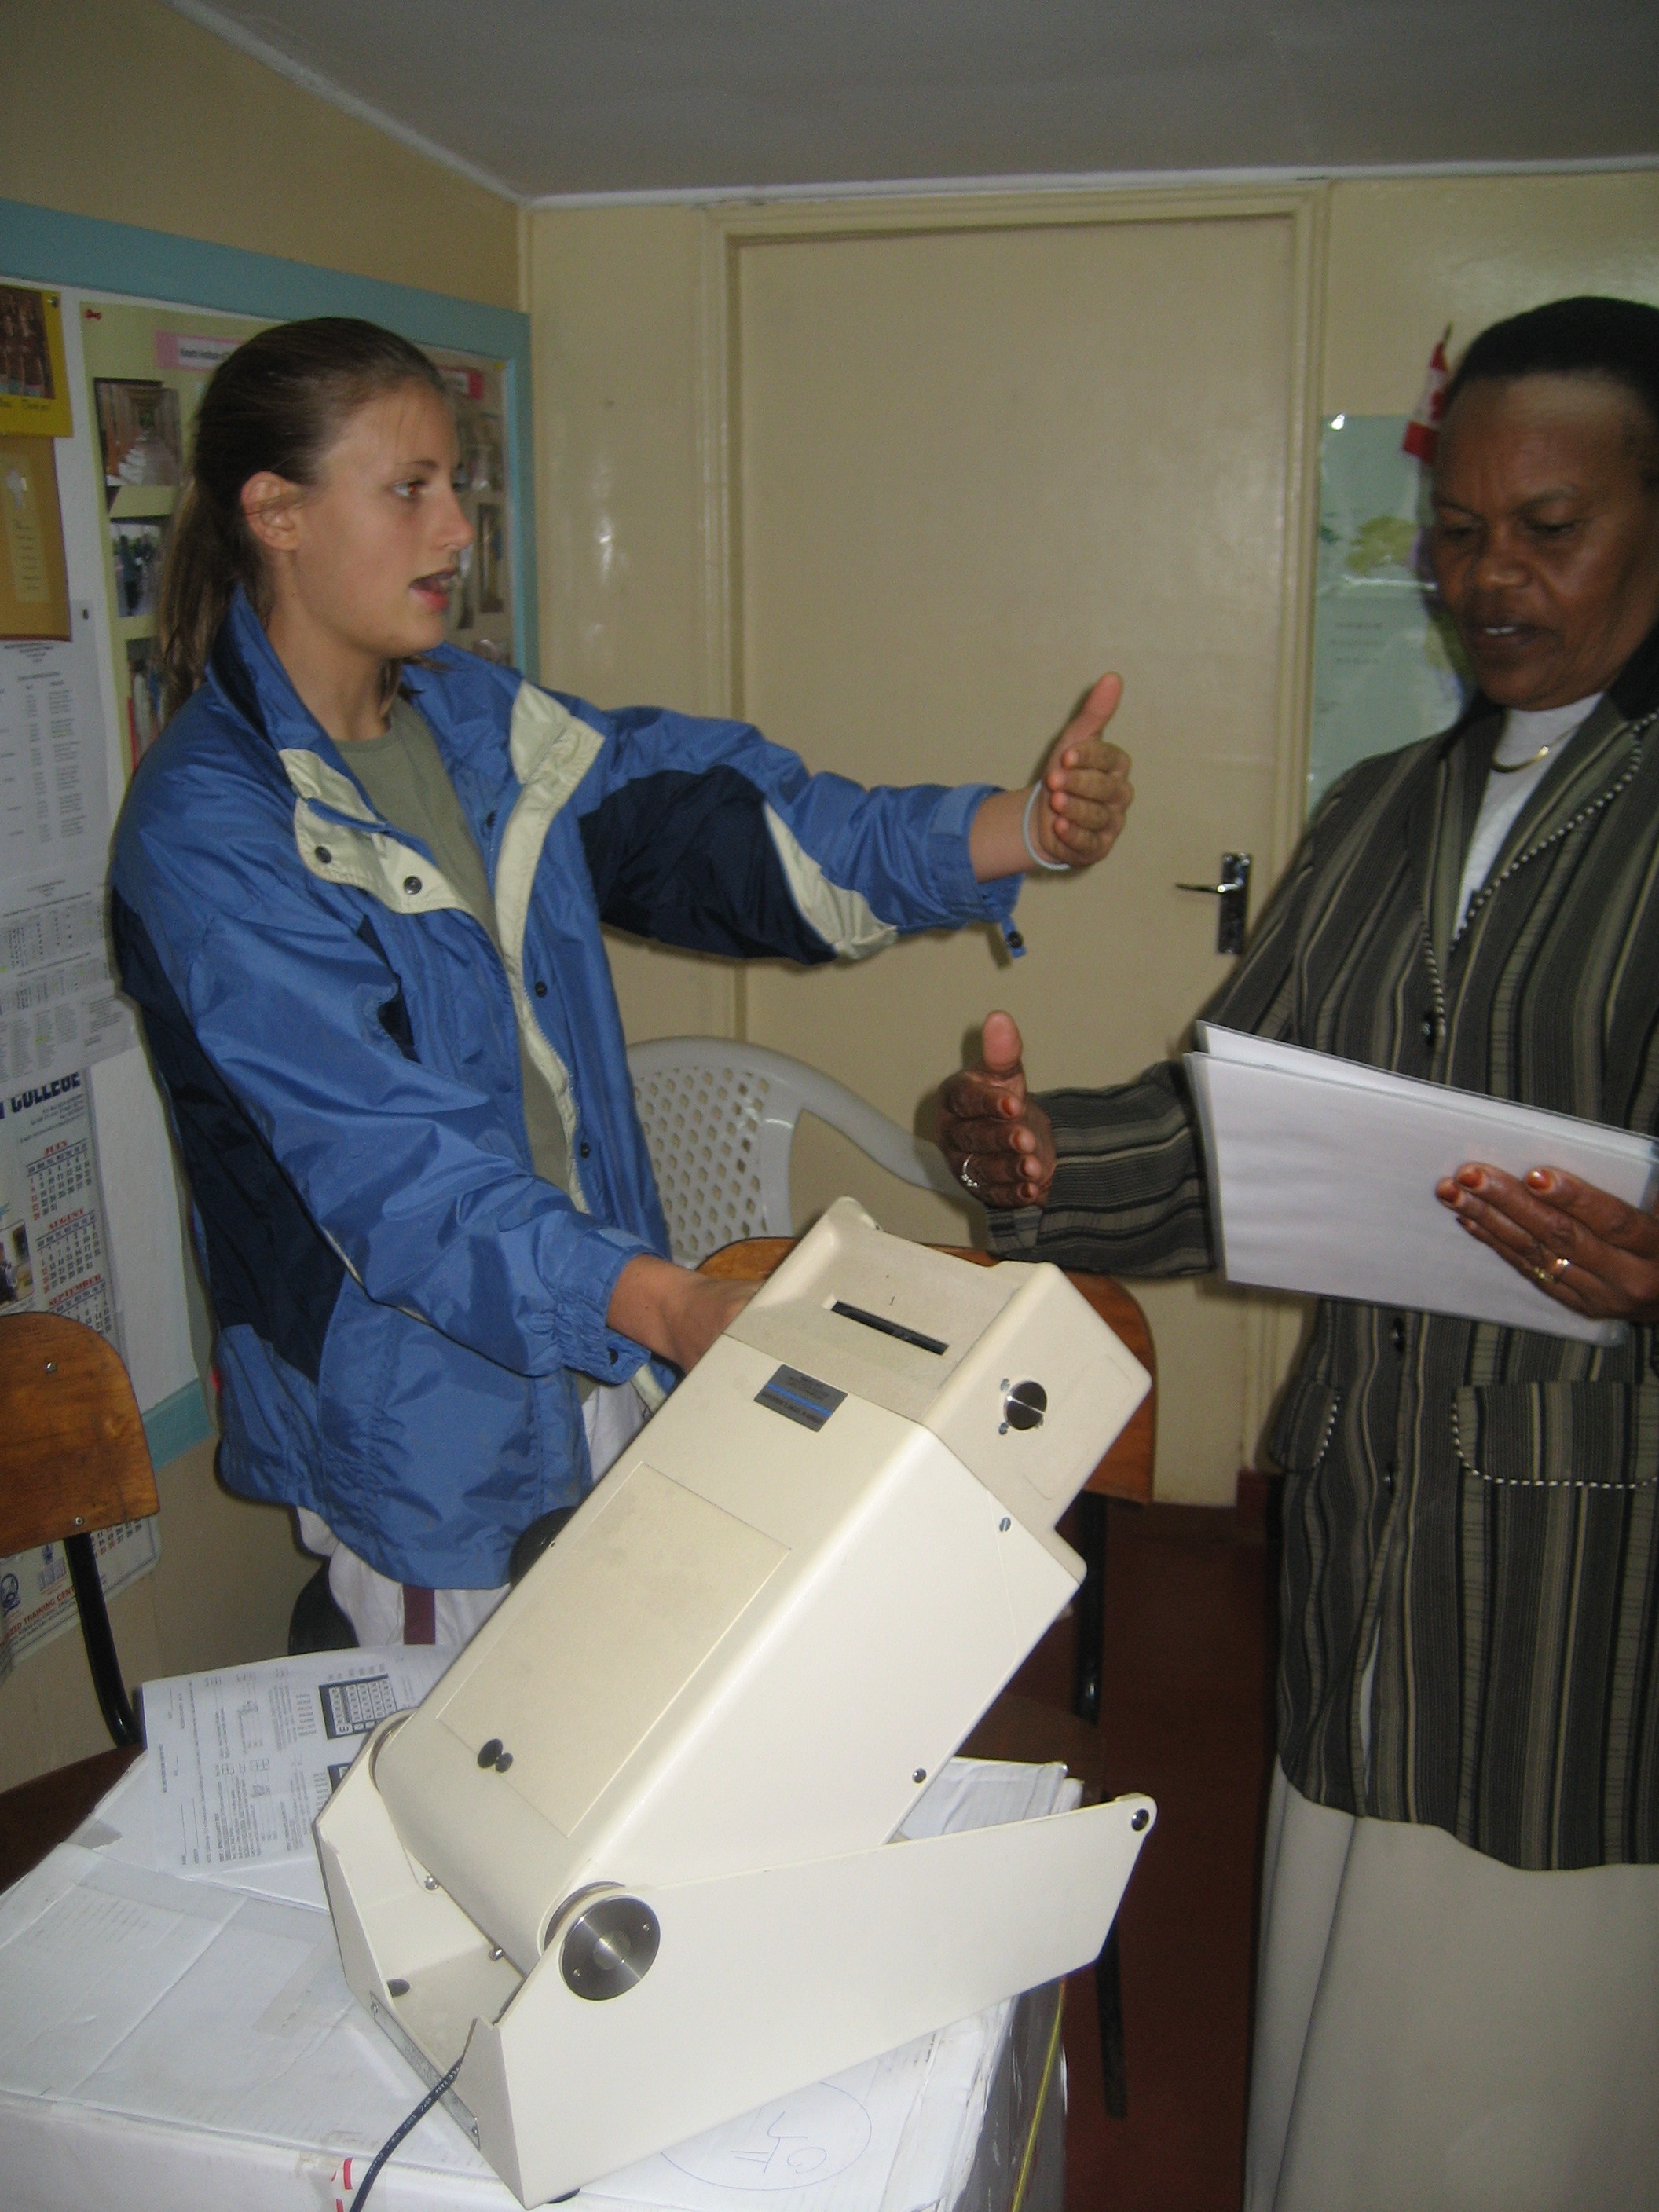 Hannah helps a nurse learn how to work the new vision testing machine at the Sugarbaker Memorial Clinic.